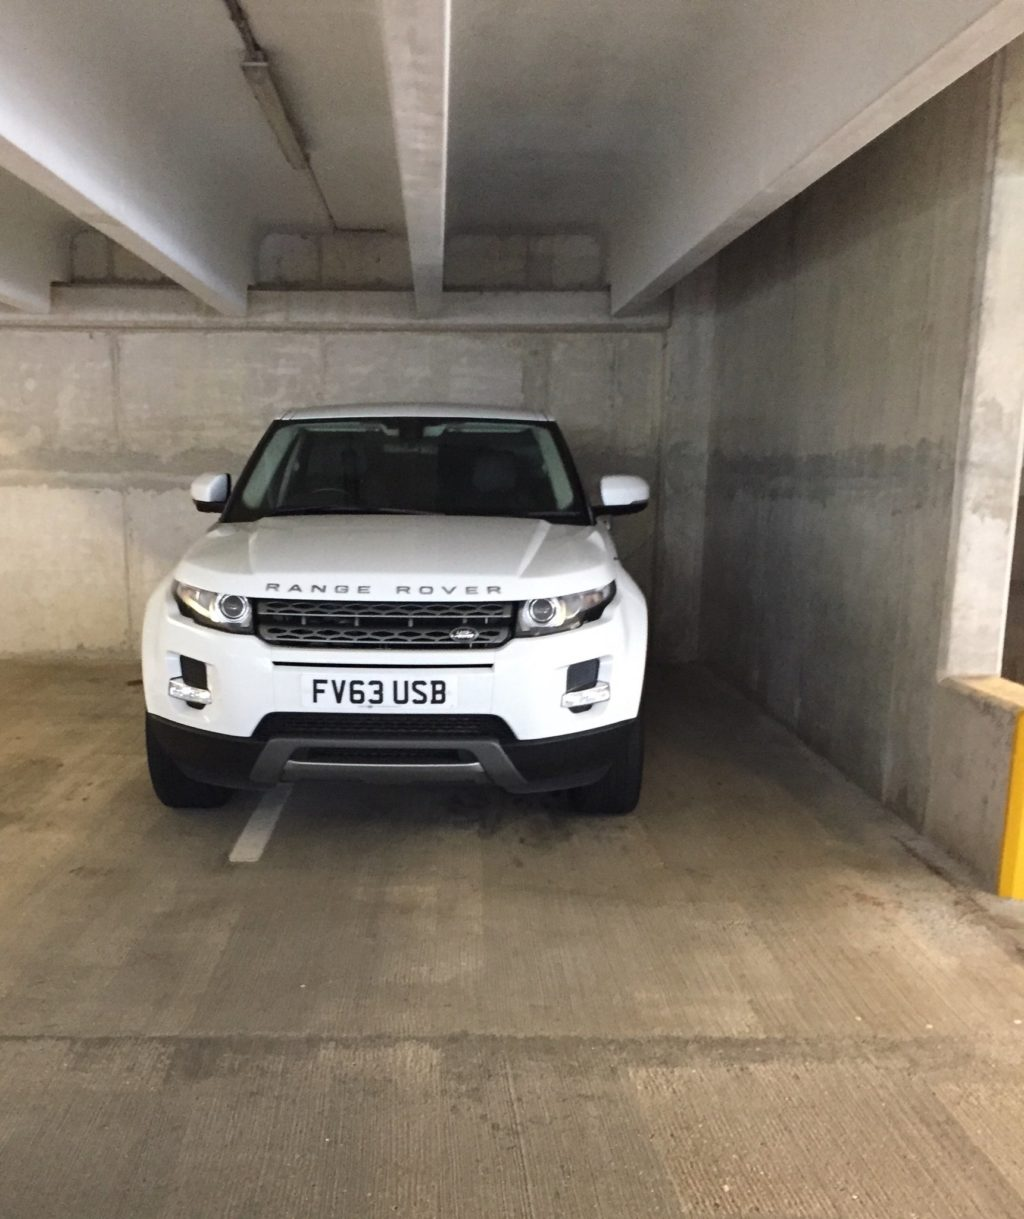 FV63 USB is an Inconsiderate Parker